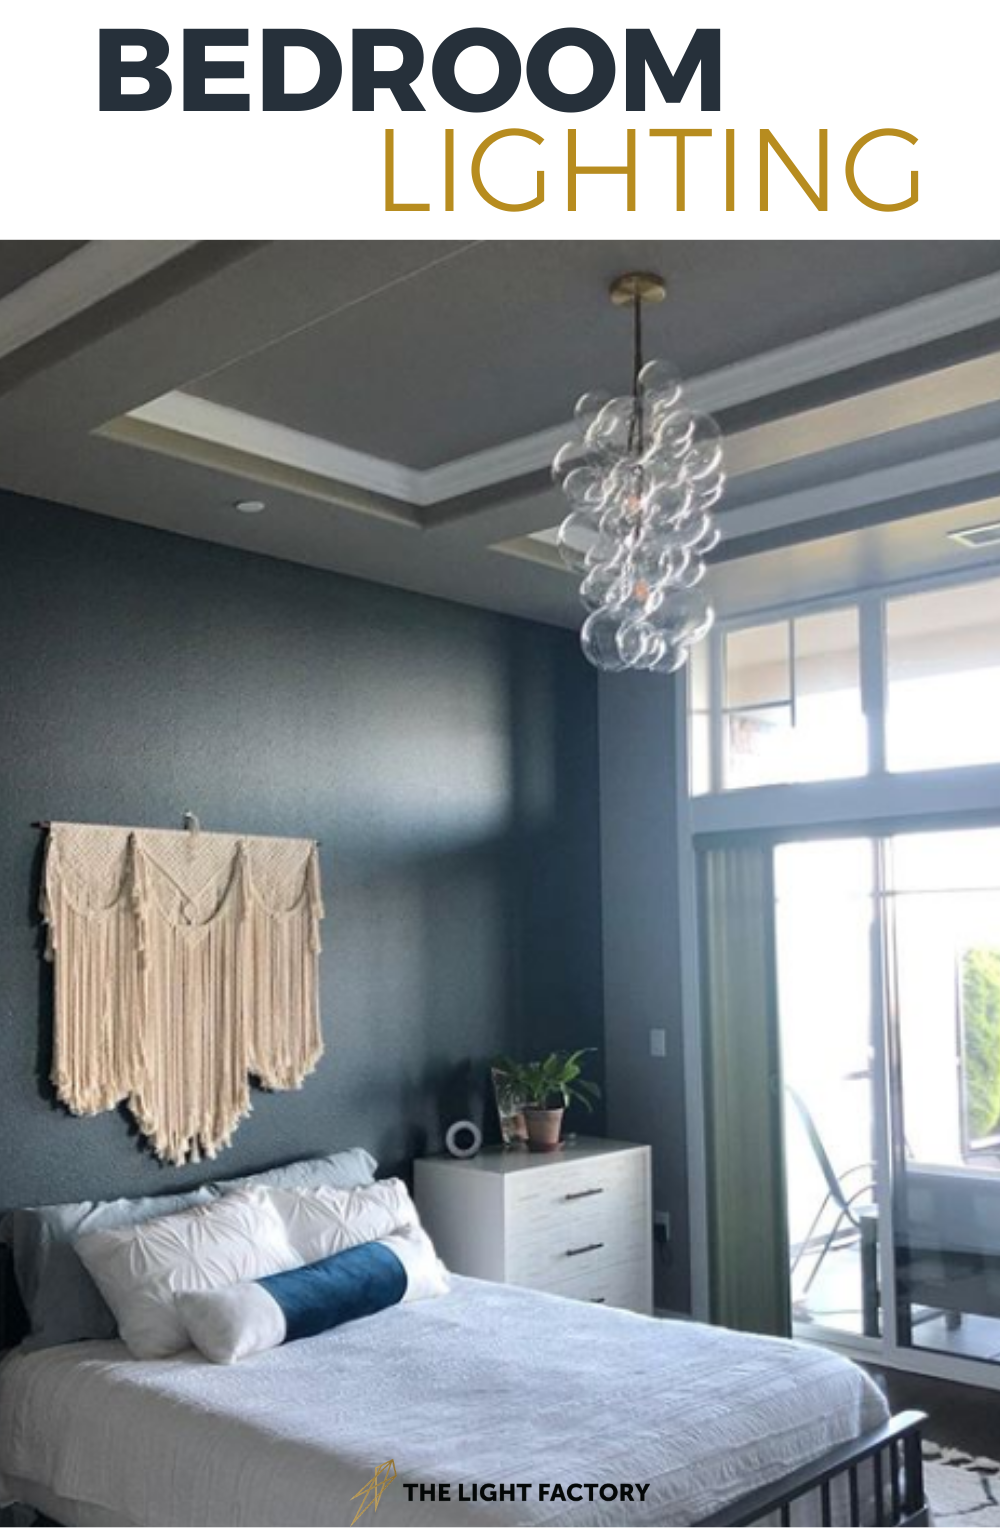 Beautiful bedroom chandelier that fits perfectly over a bed. Create a focal point in your bedroom lighting with our Waterfall Bubble Chandelier. #bedroomlightfixture #bedroomlighting #chandelier